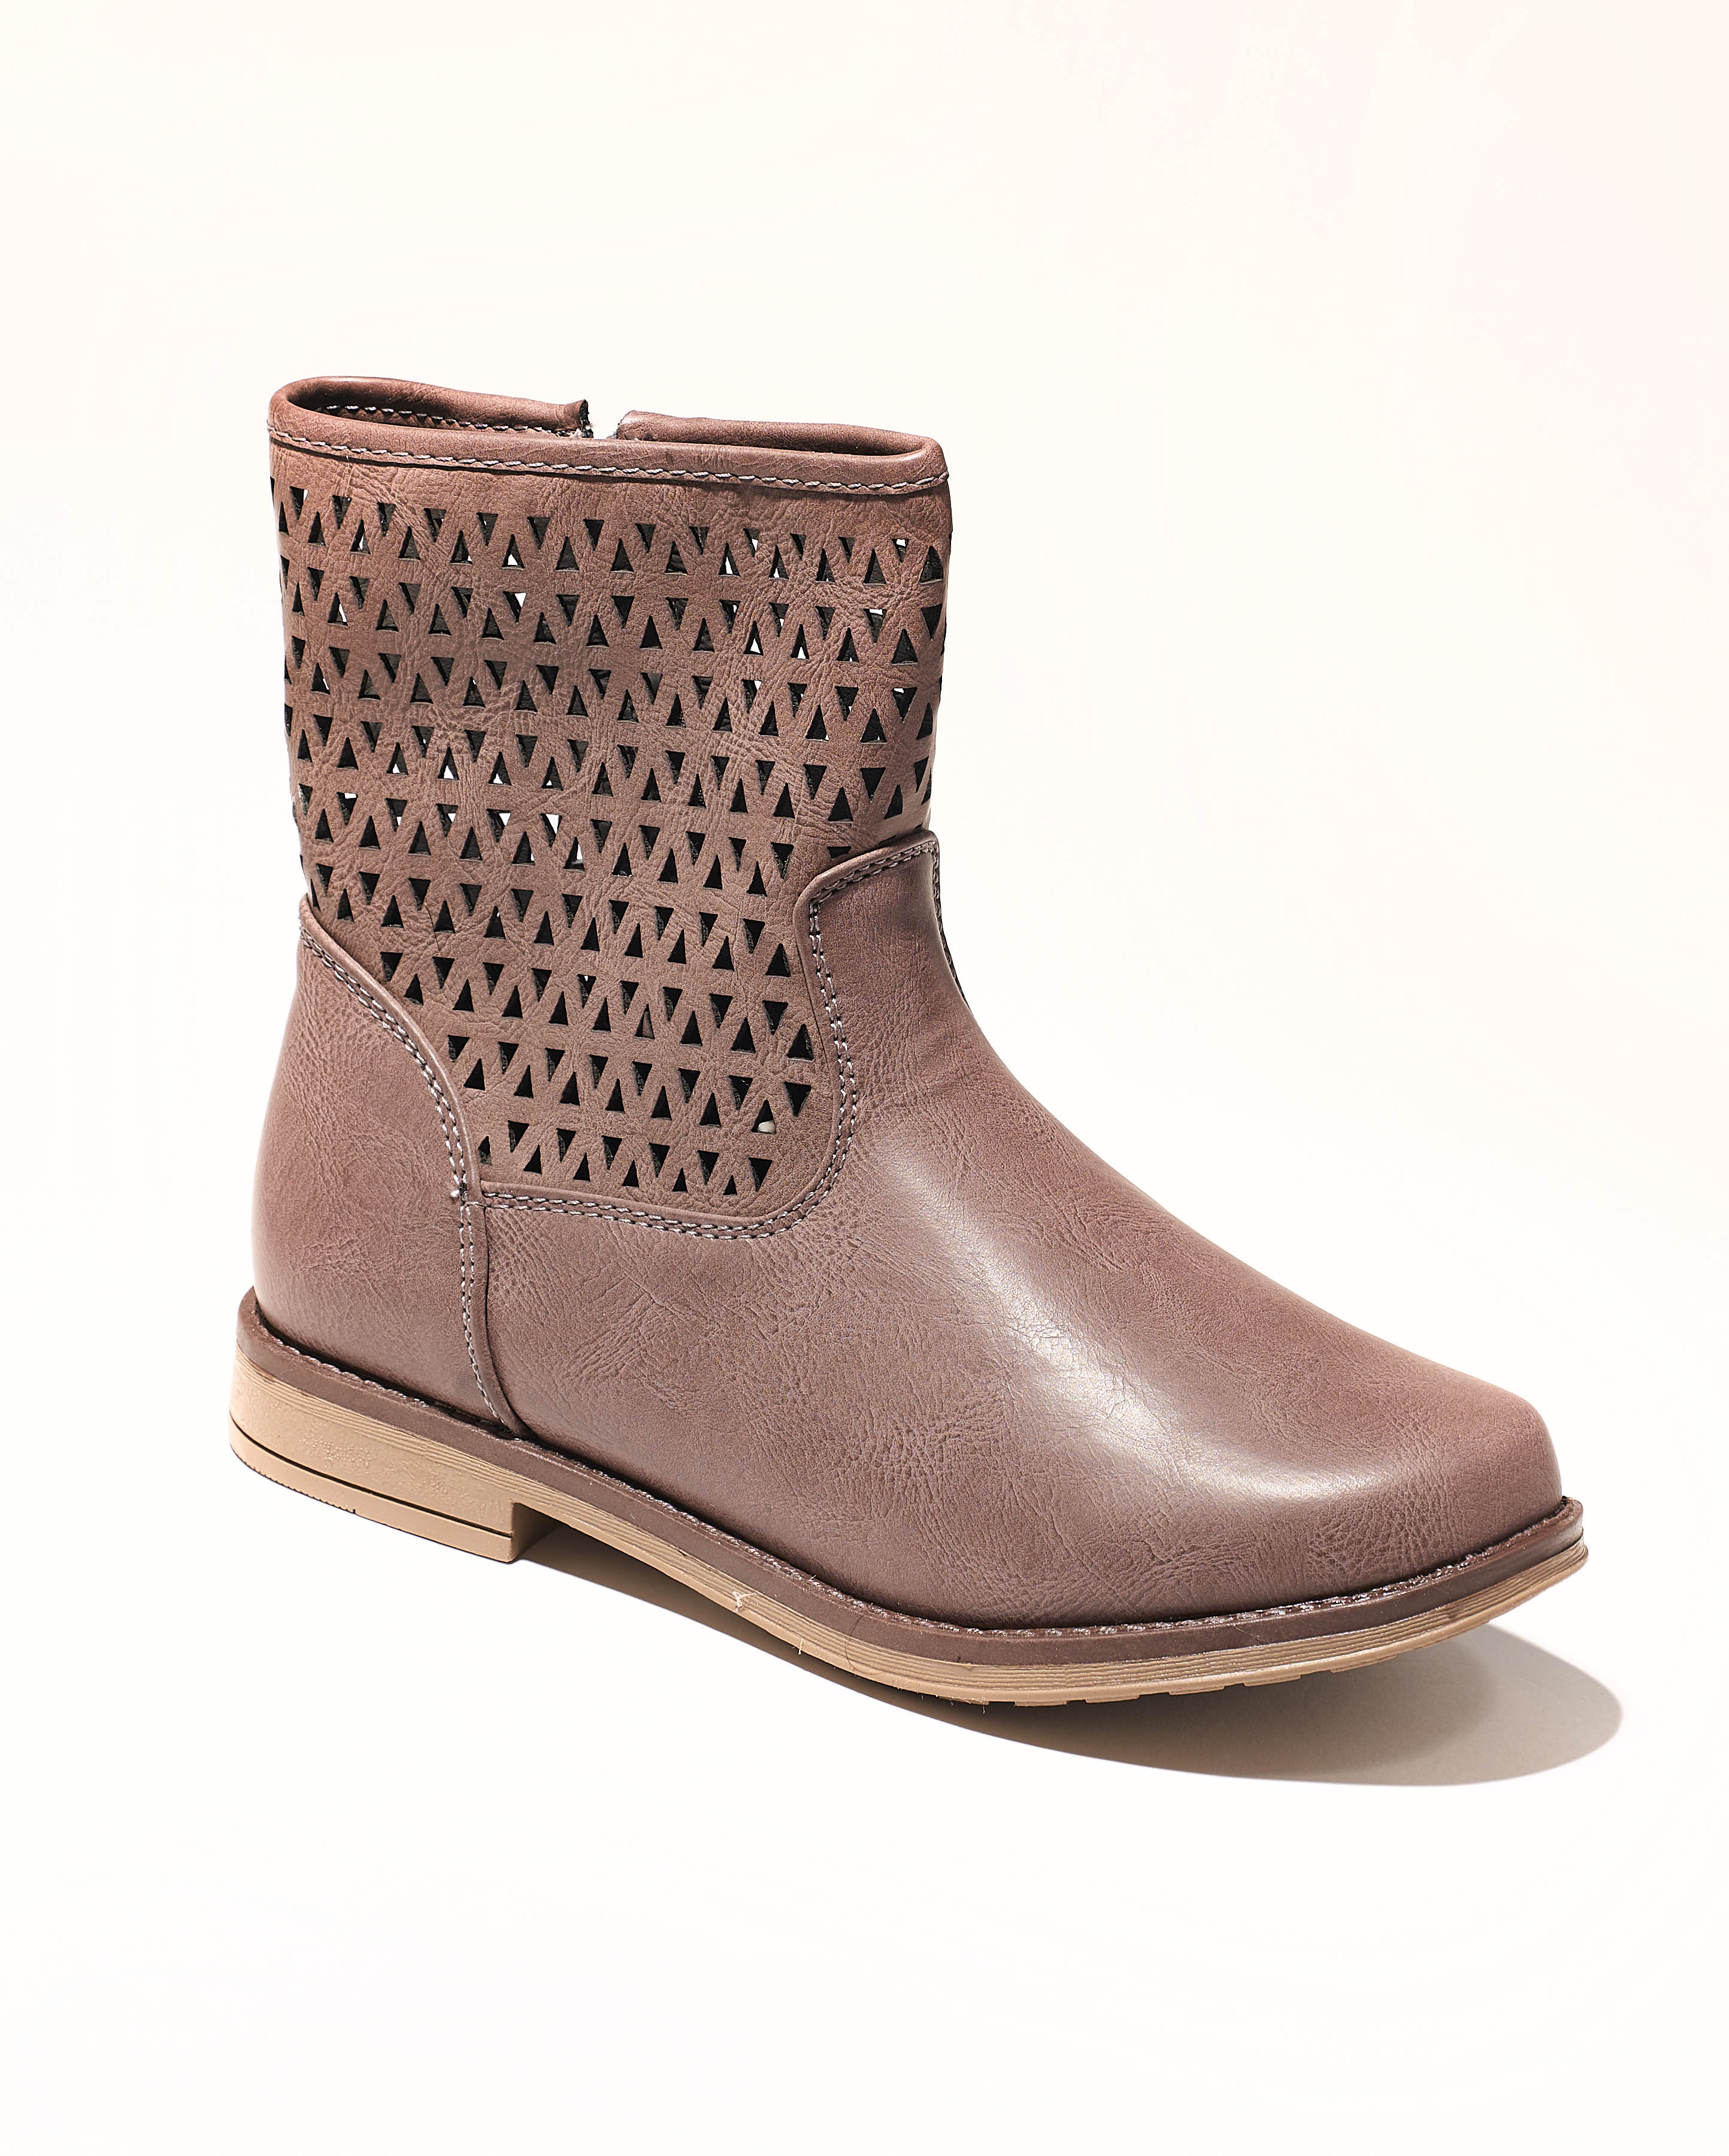 Boots Fille - Boots Gris Jina - Yb1813401